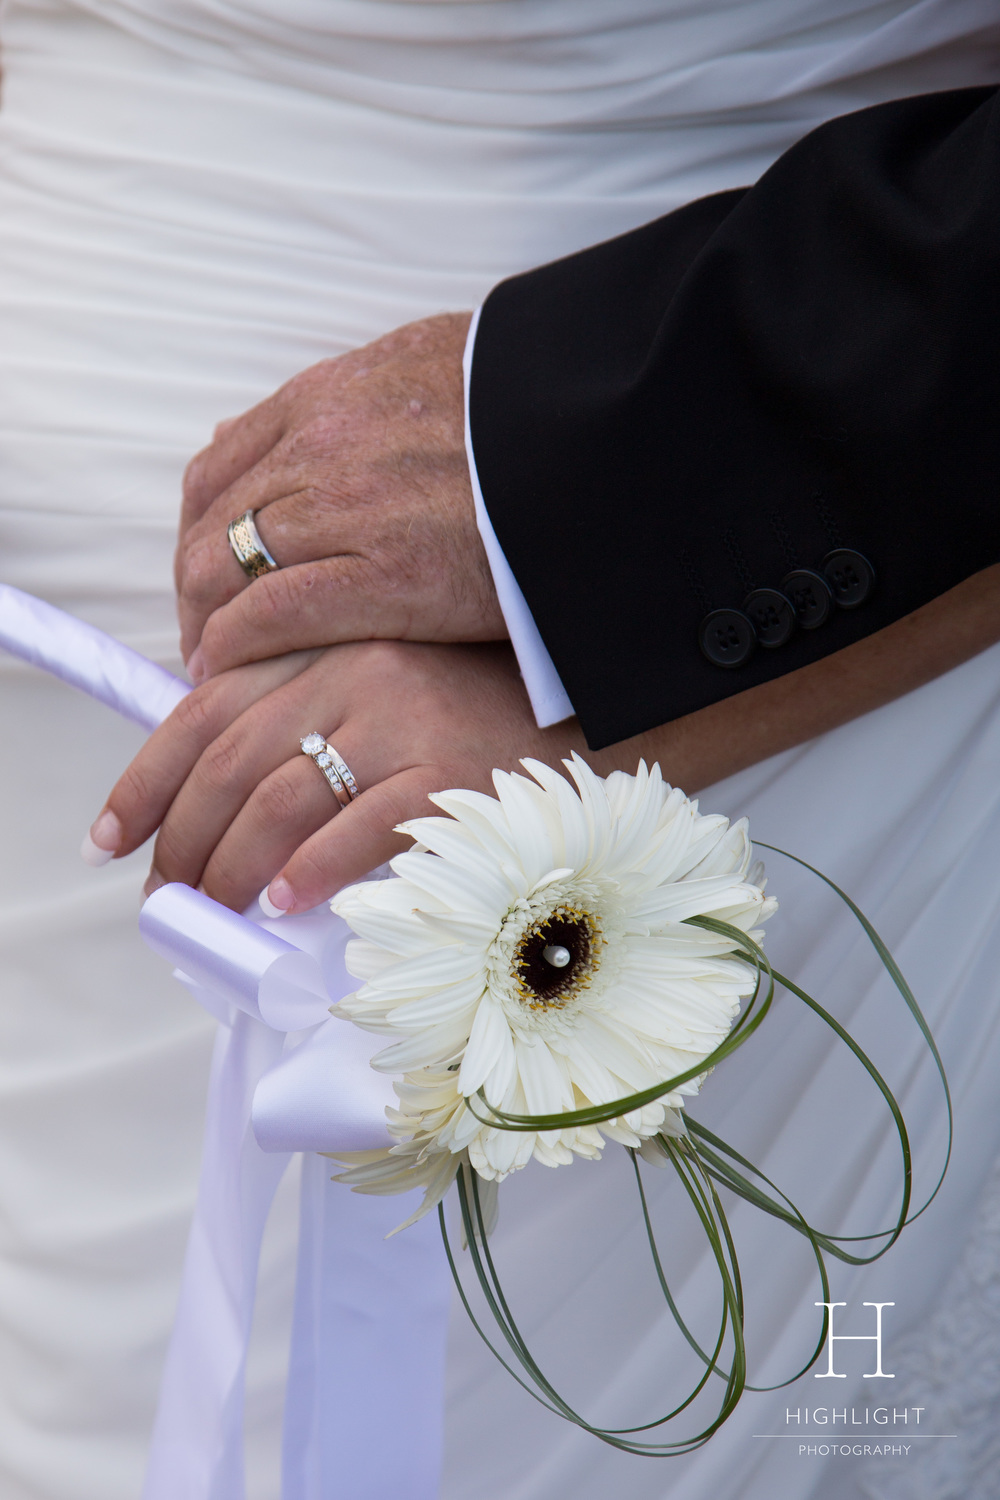 highlight-wedding-photography_masterton_new-zealand.jpg